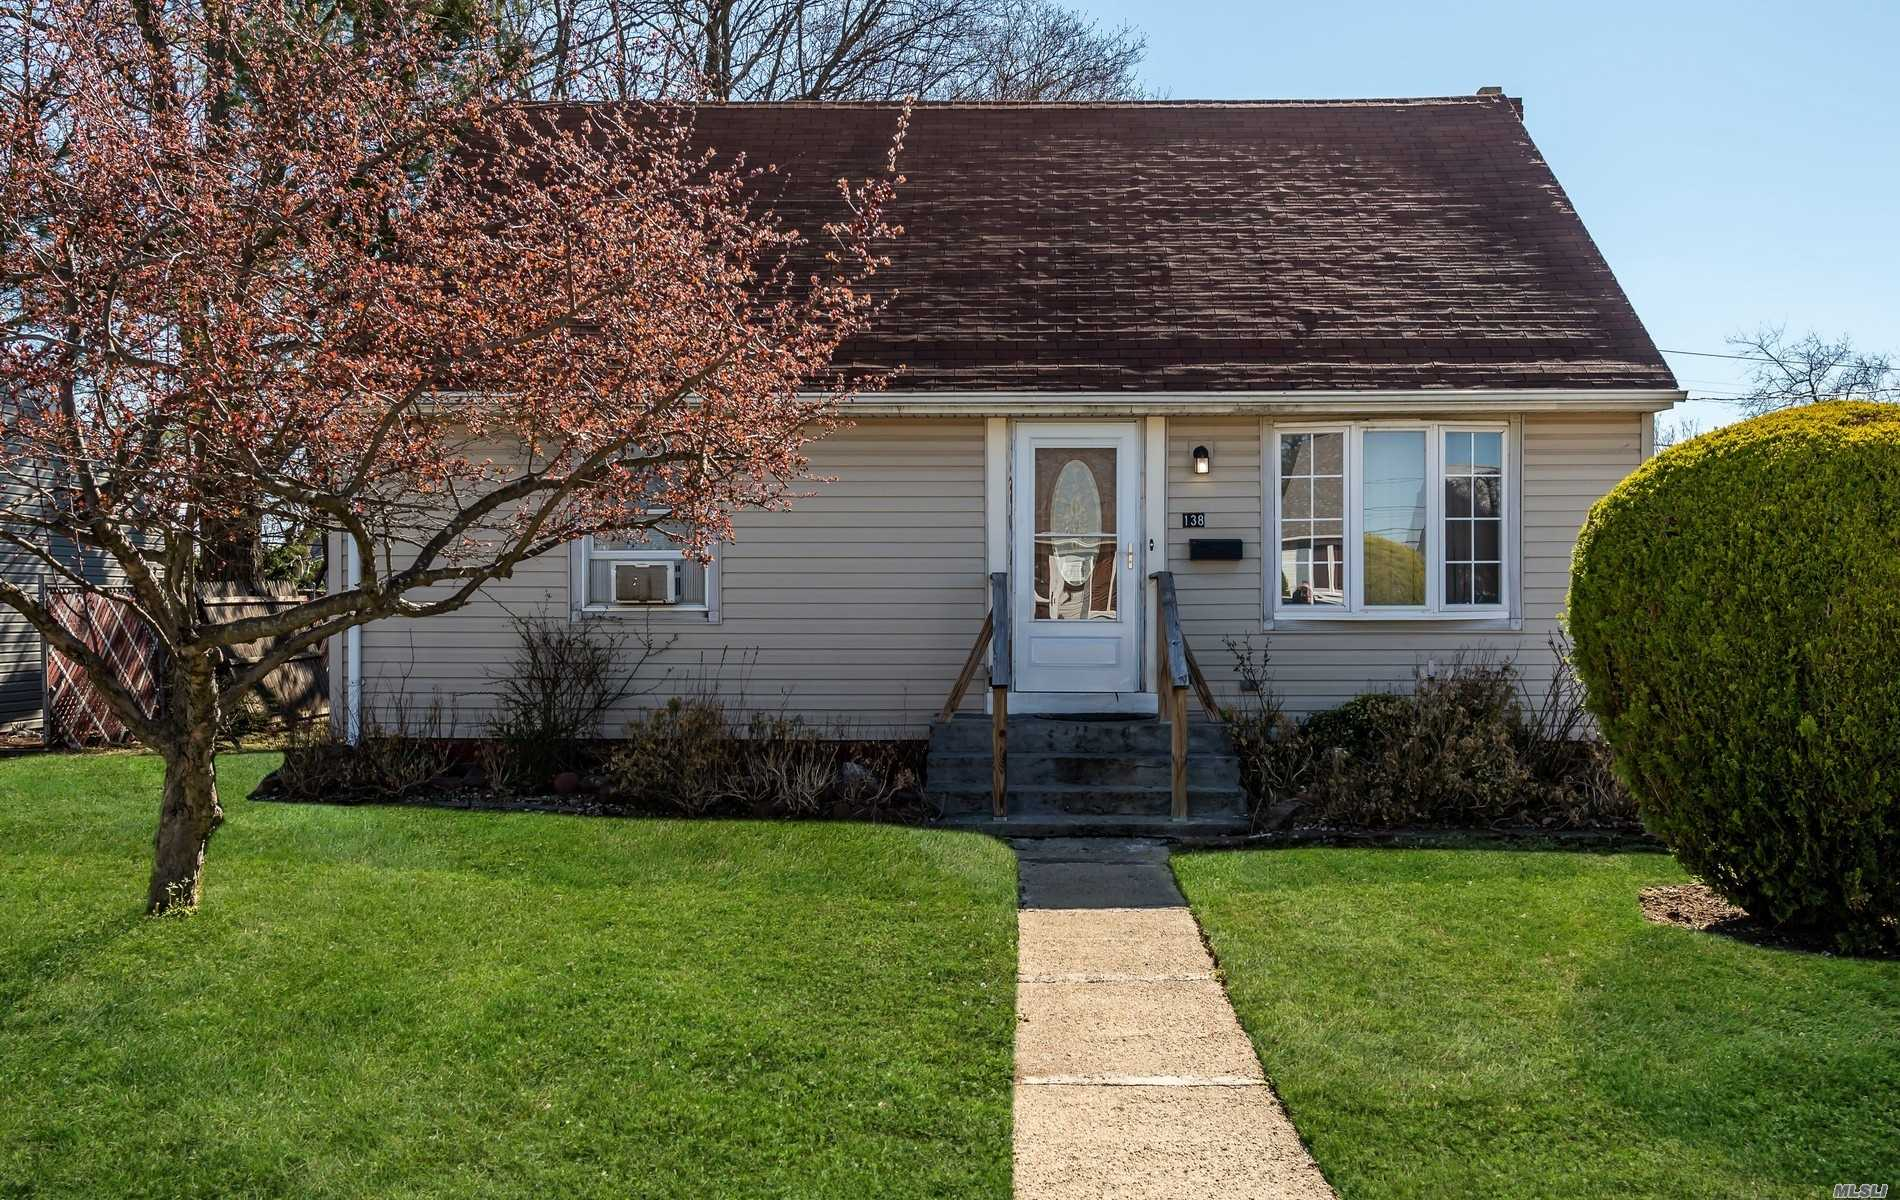 This beautiful Cape located mid-block features a formal living room, large eat-in-kitchen/dining area, 4 bedrooms, basement with laundry and storage.